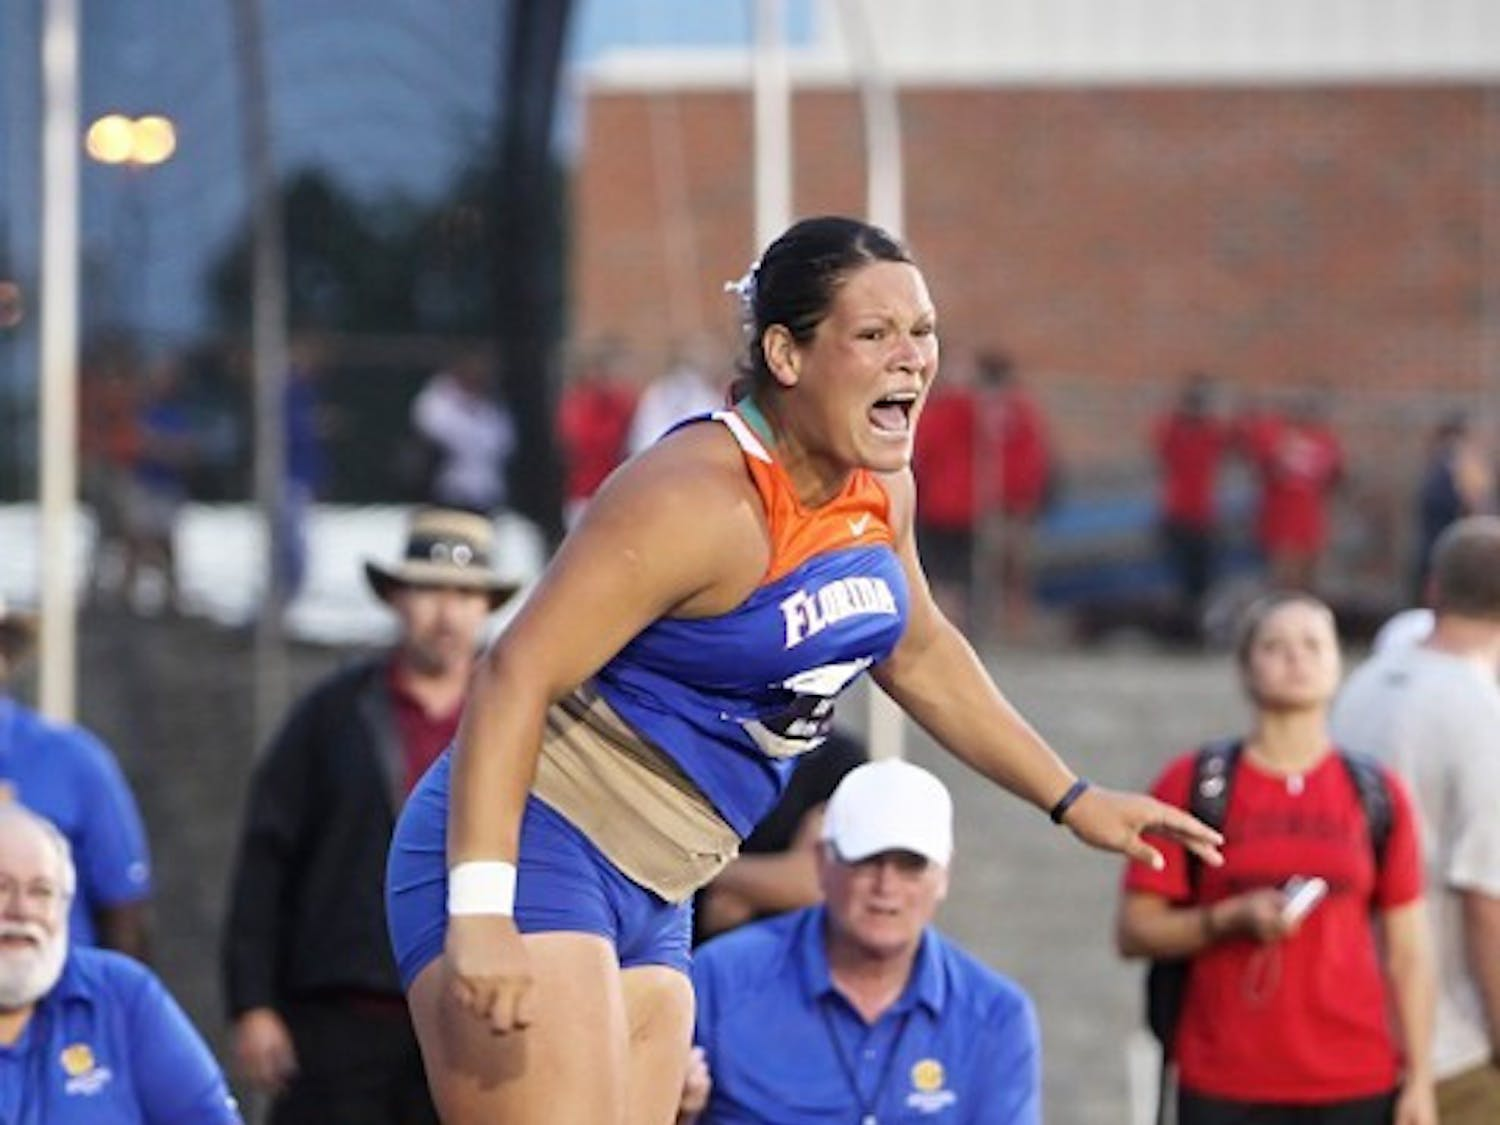 Florida track and field athlete Keely Medeiros tosses the shot put during the 2009 SEC Championships. She set a new personal best on Saturday.